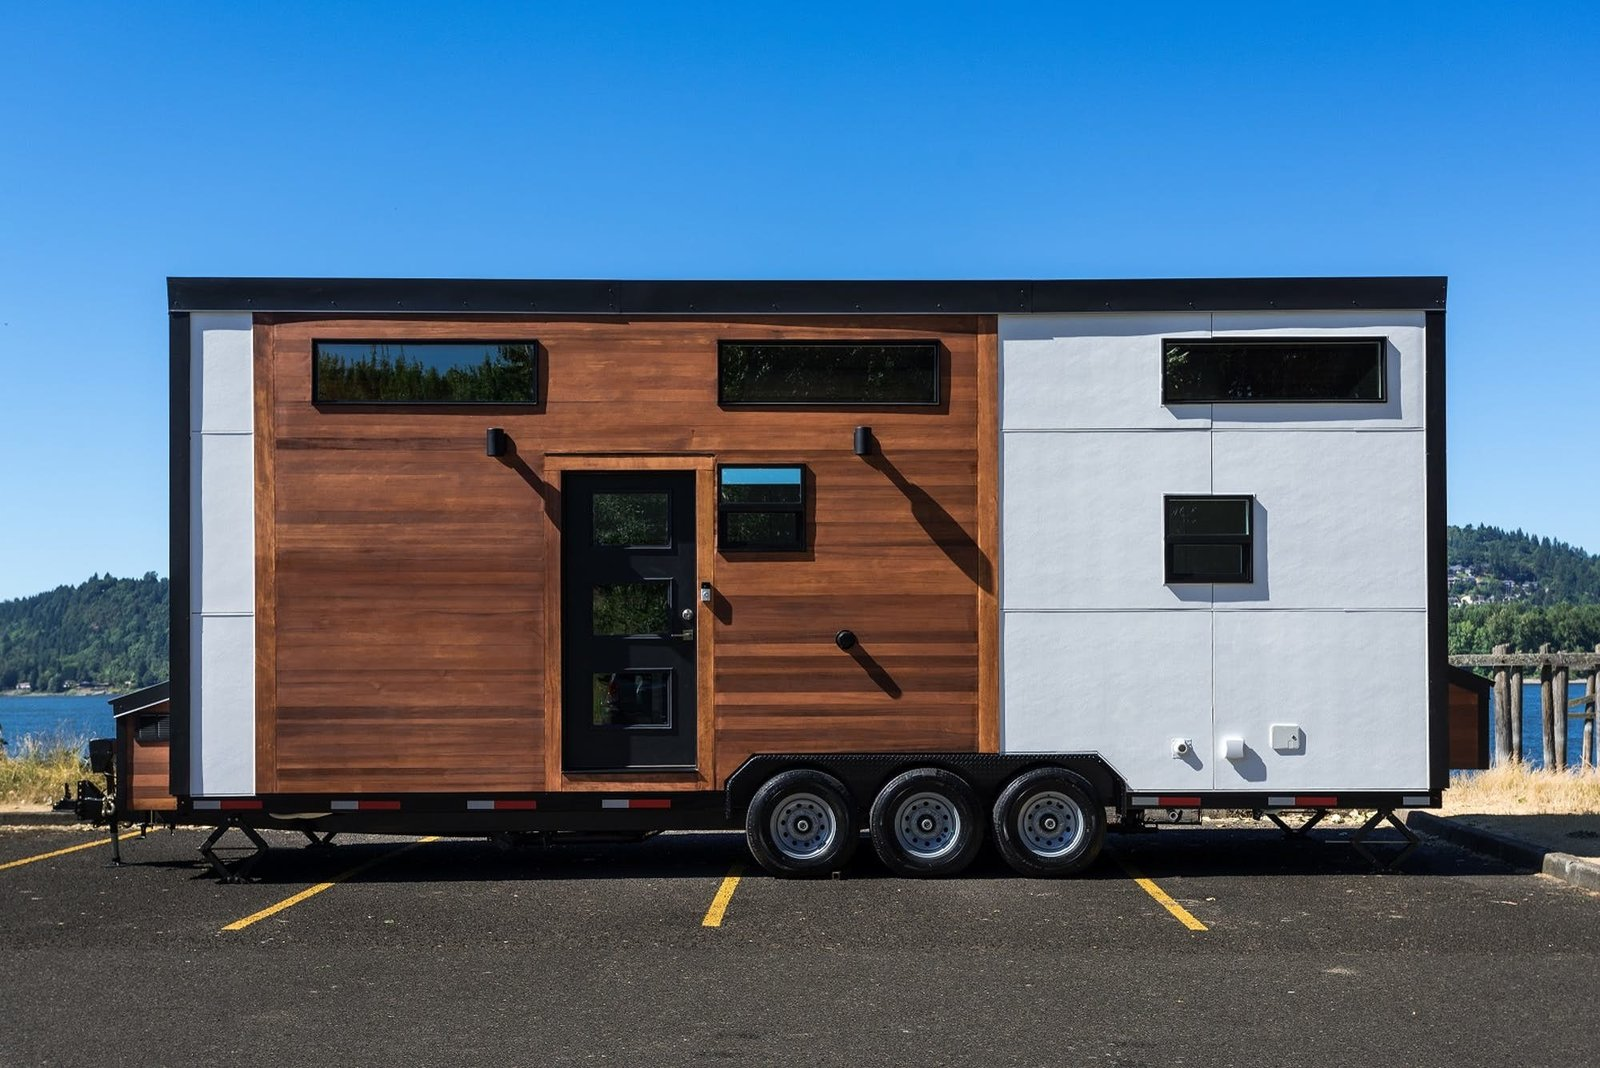 Photo 3 of 13 in 12 Tiny House Companies That Can Make Your Micro